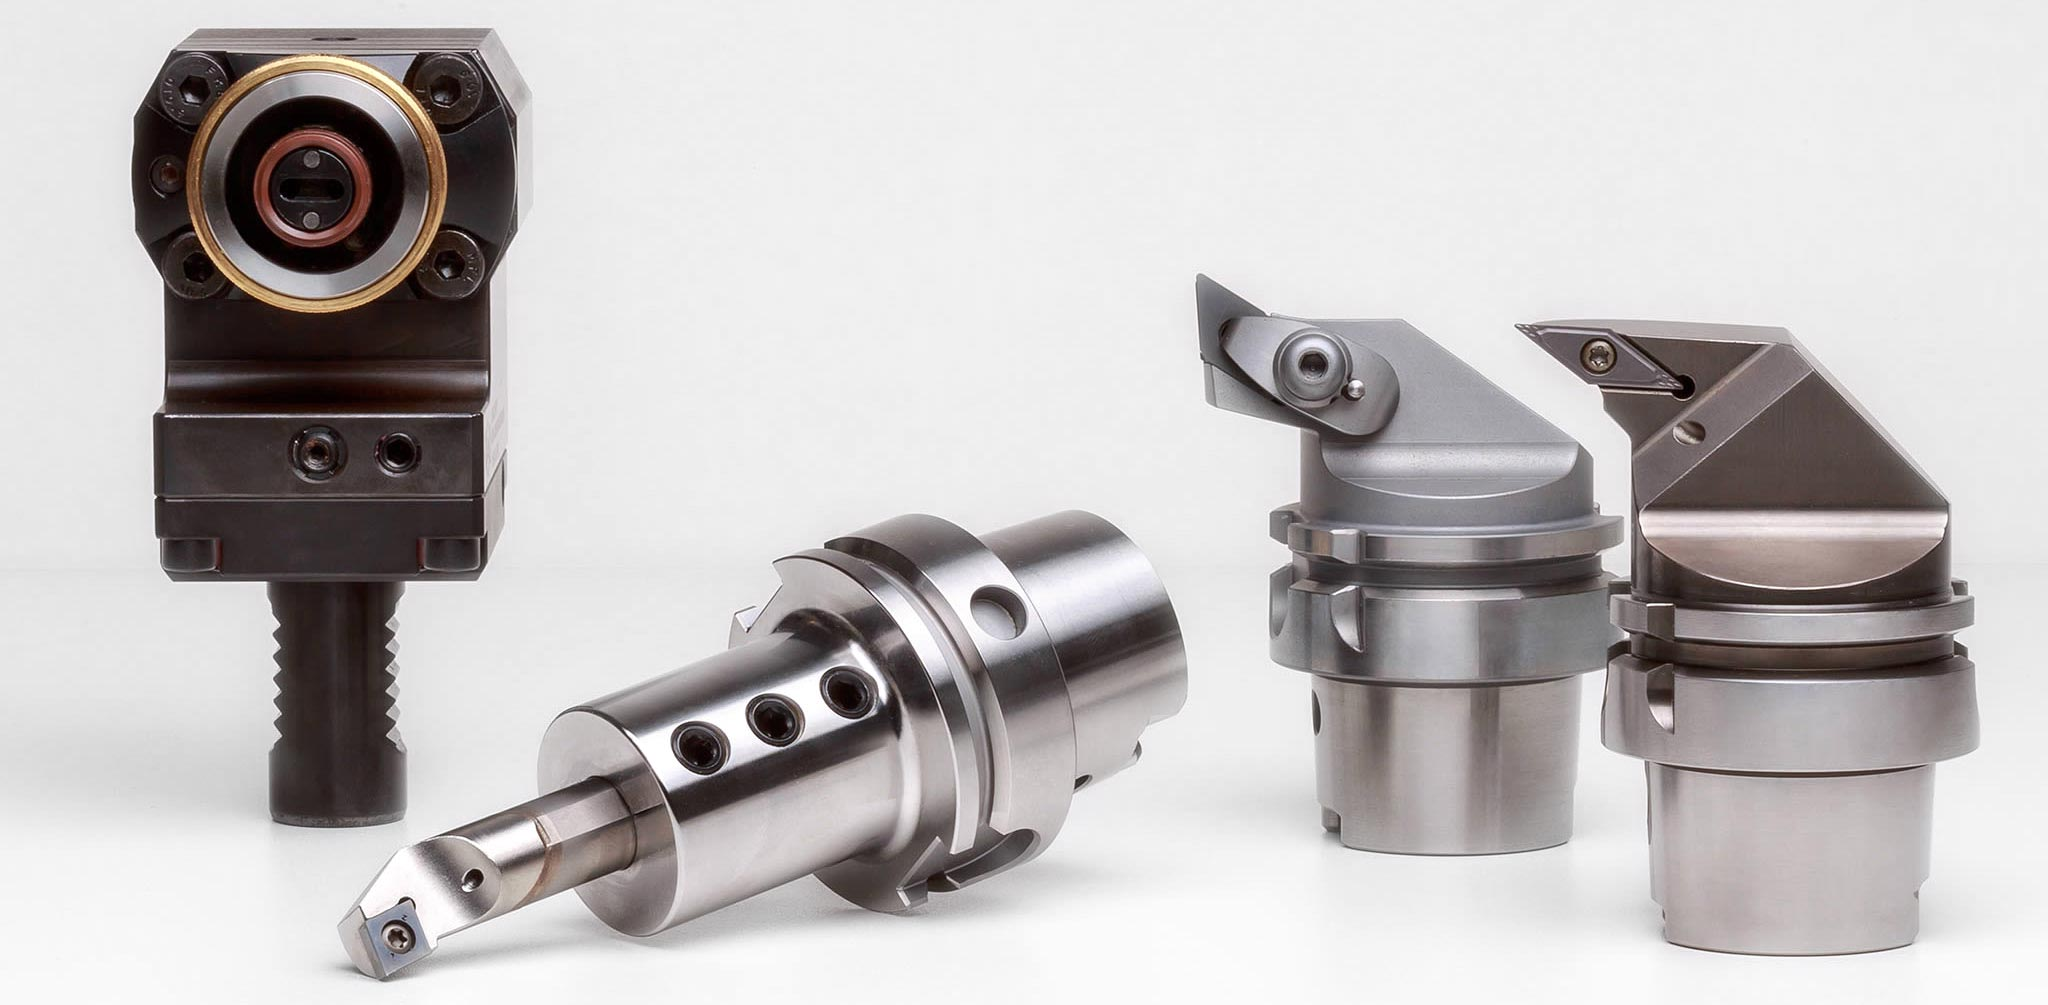 ISO turning tools and conversion systems with HSK-T from MAPAL.